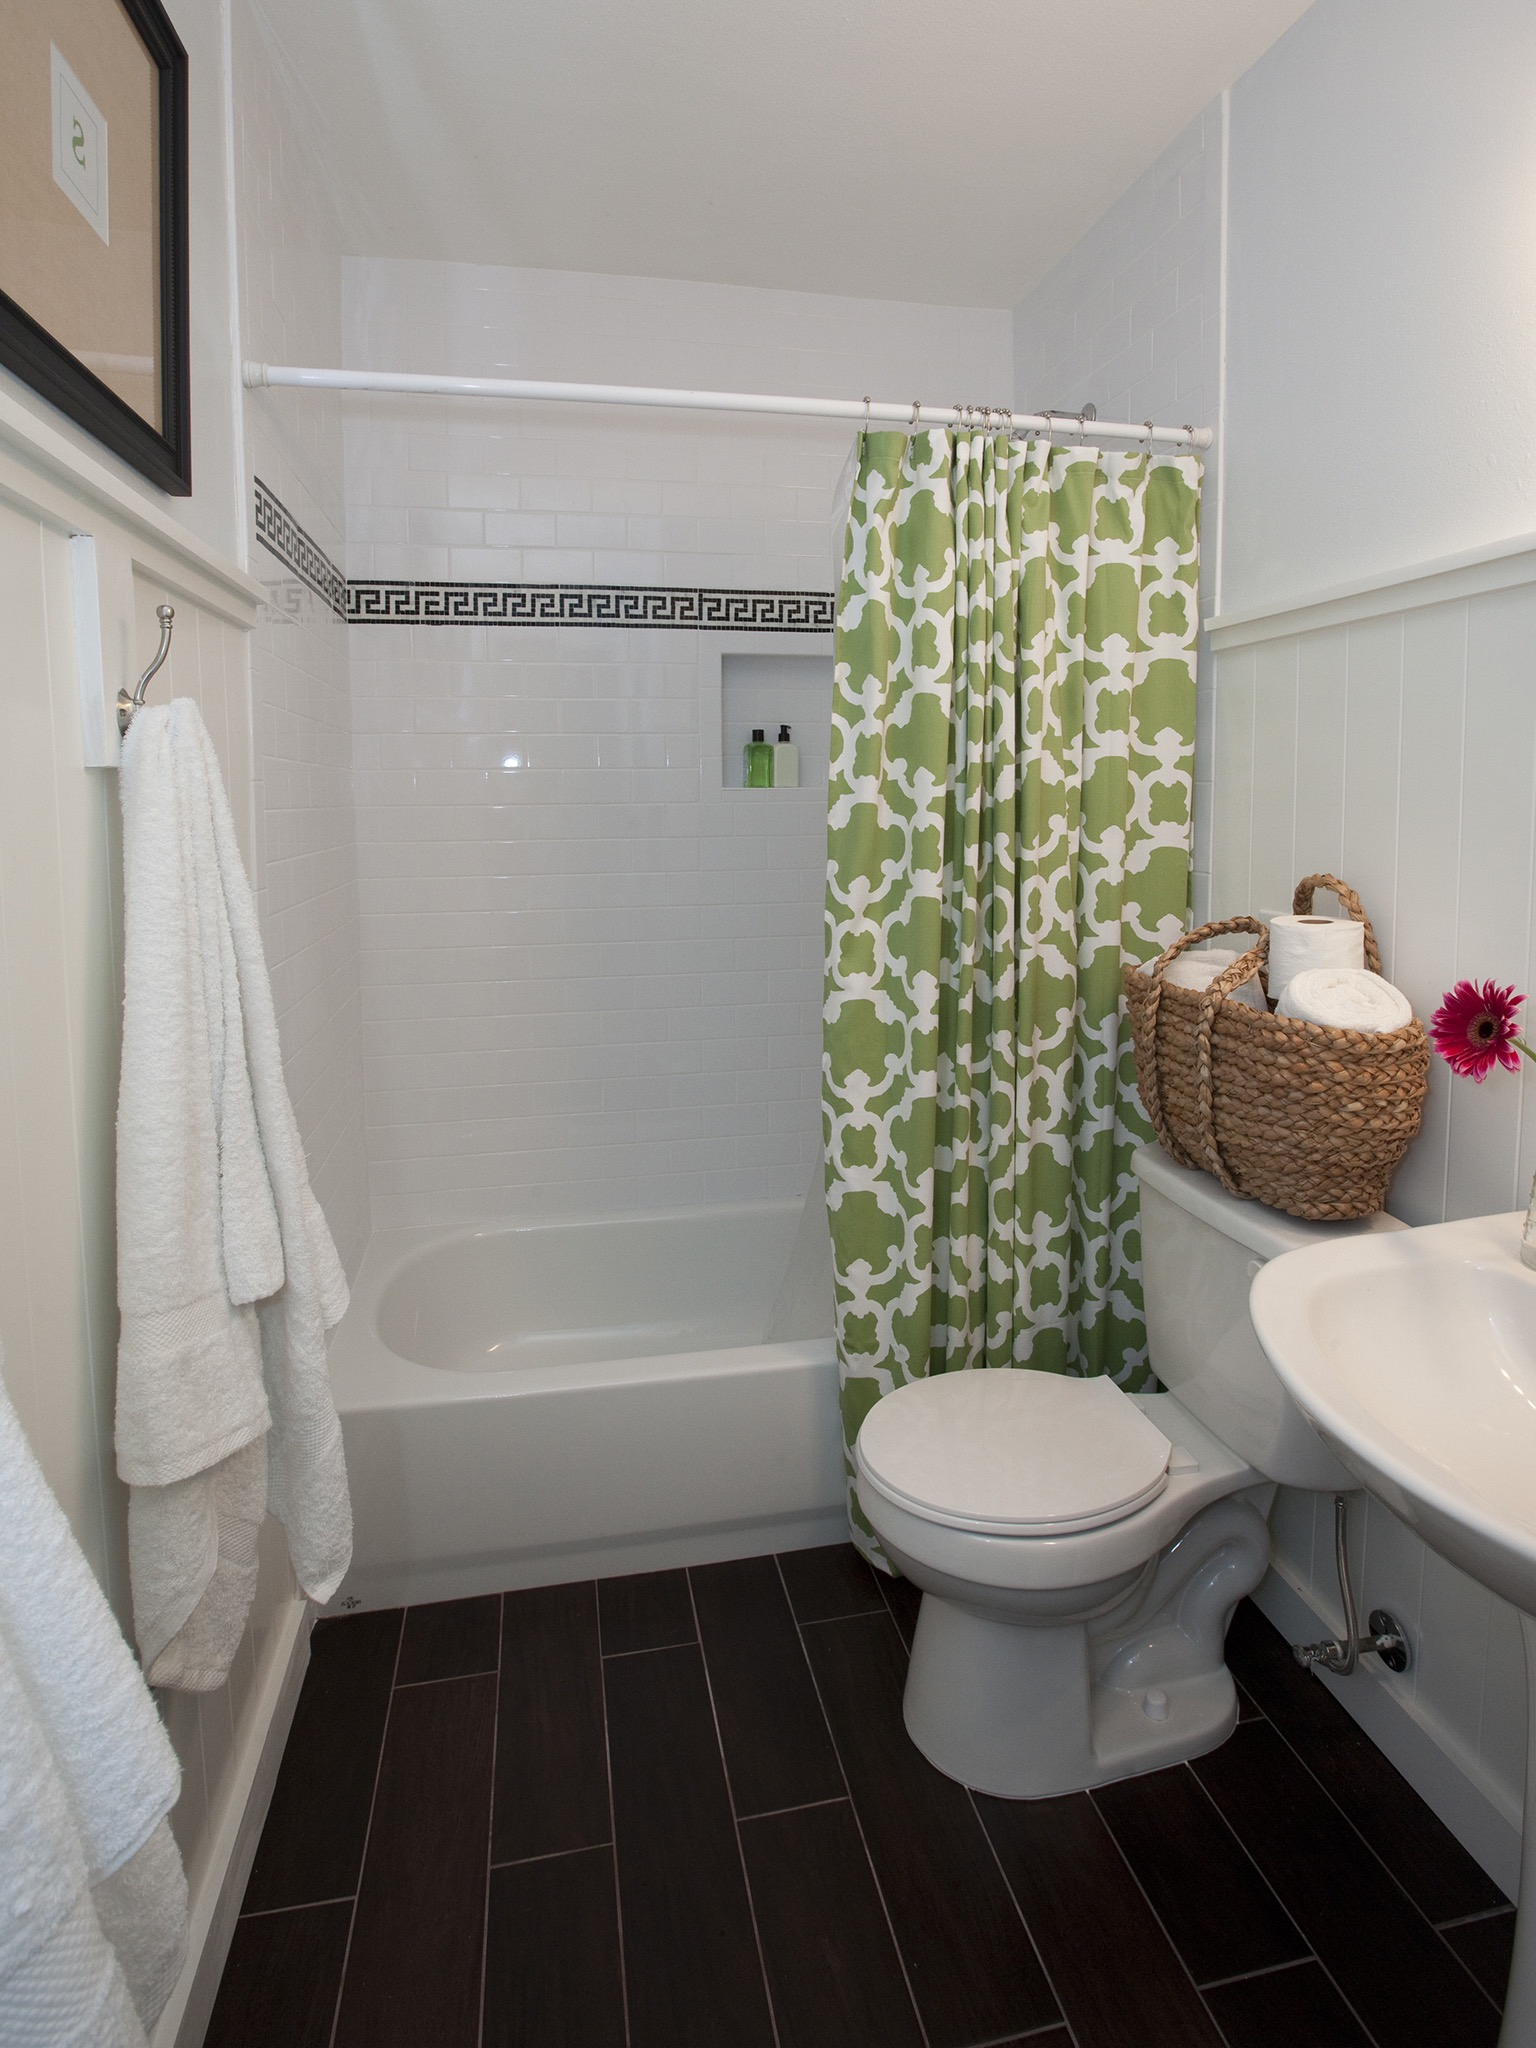 Small Bathroom With Green Shower Curtain (View 10 of 14)